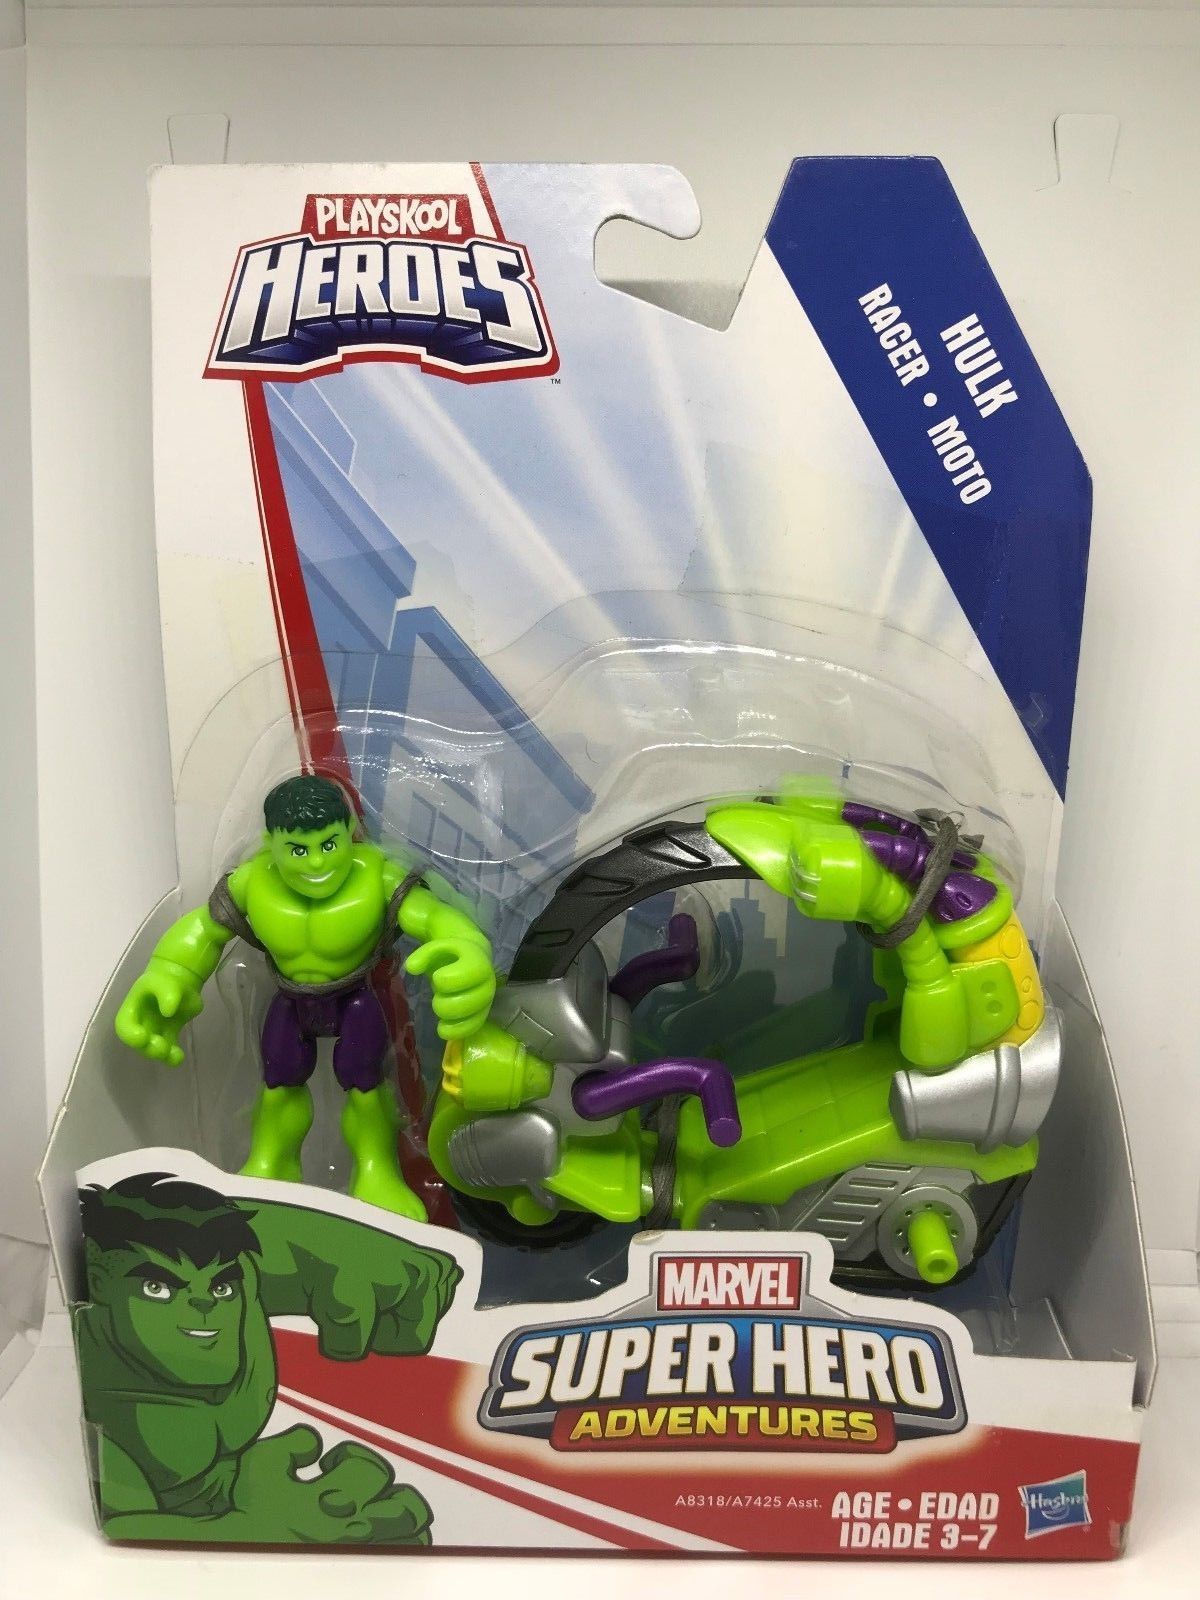 Playskool Heroes Marvel Super Hero Adventures Hulk Figure Tread Racer